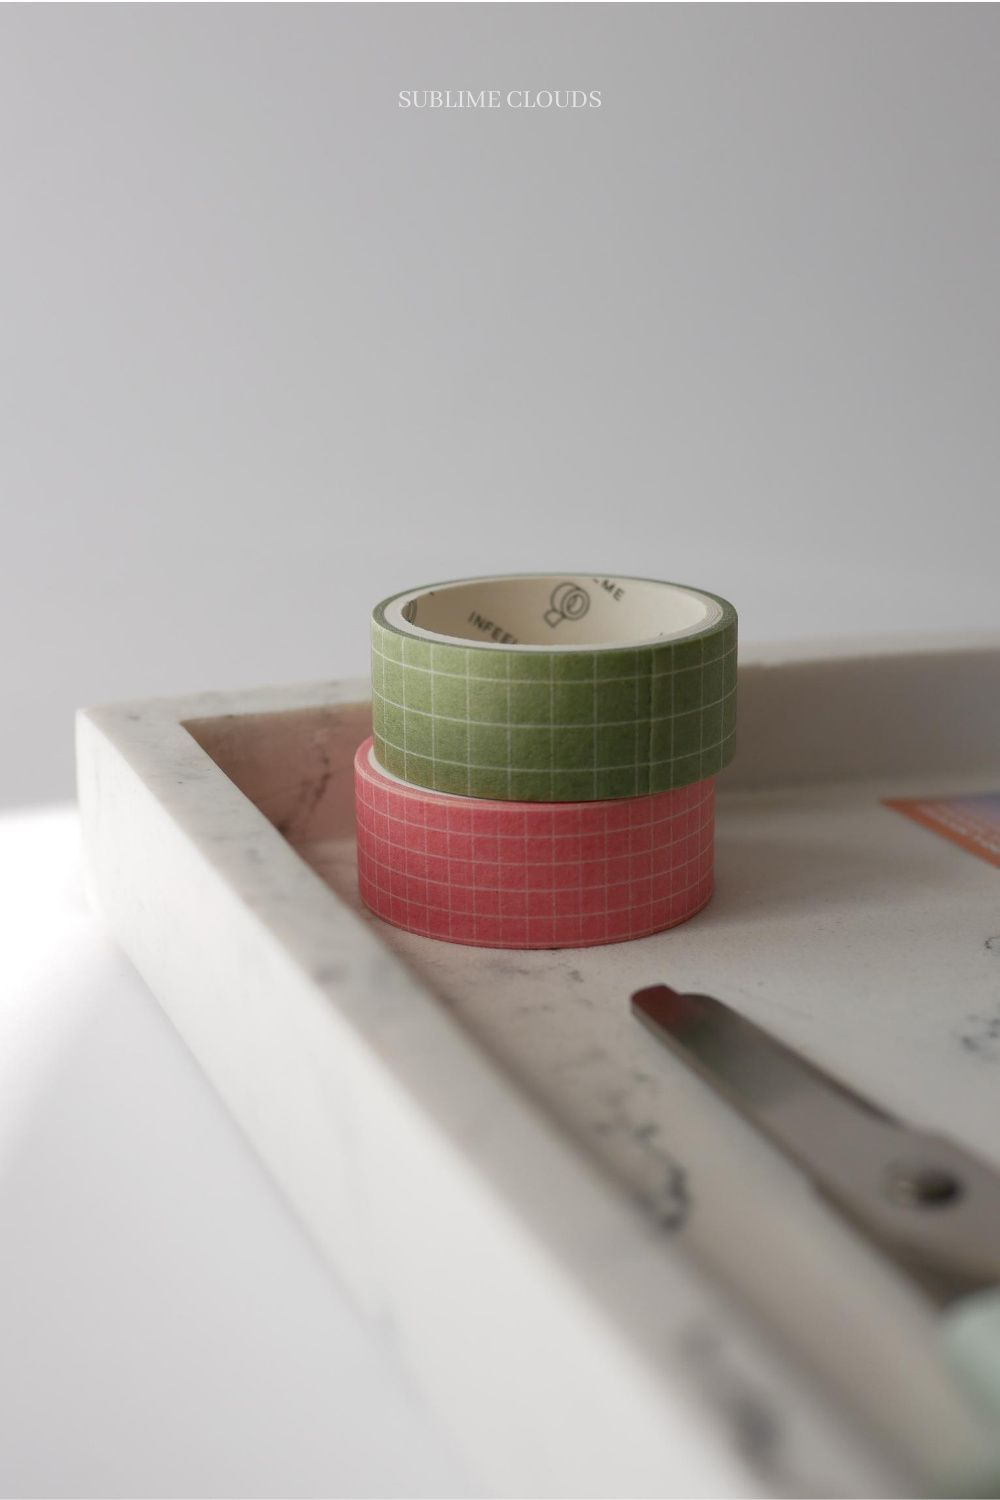 Set 2 Grid Washi Tape Decorative Tape Pink Green Pastel Etsy In 2020 Washi Tape Bullet Journal Accessories Washi